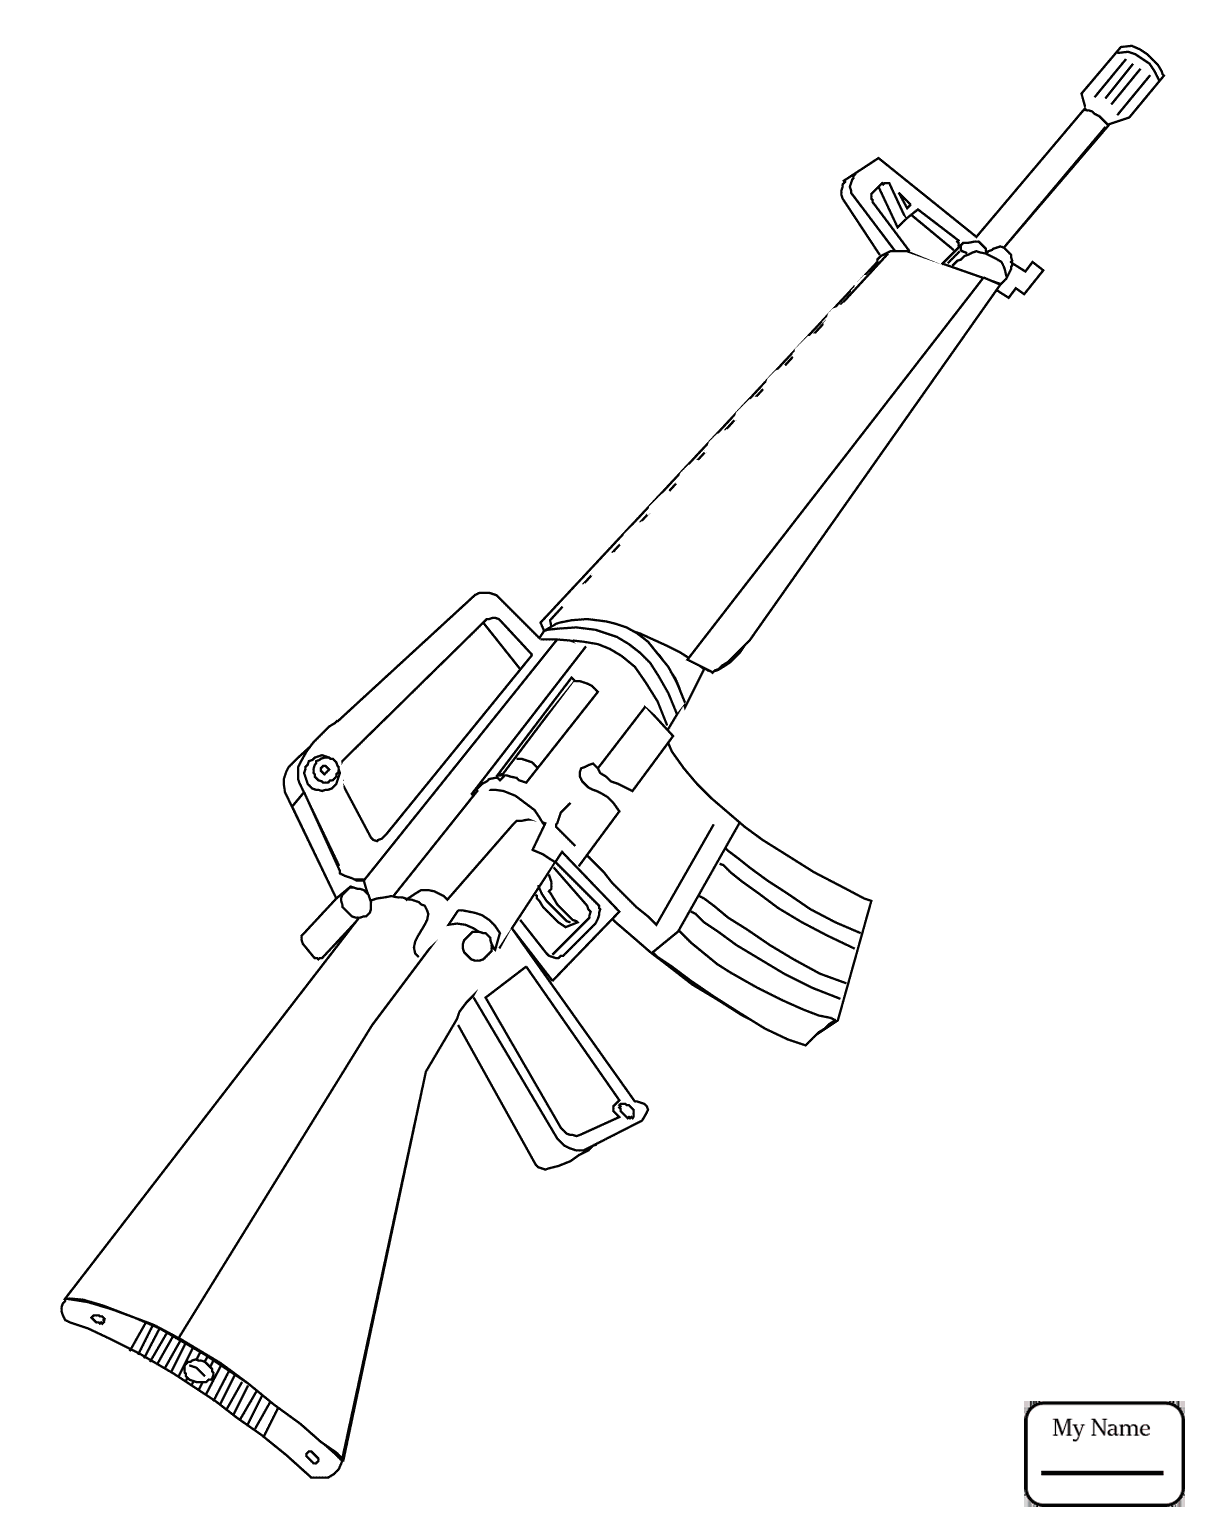 Ak 47 Drawing at GetDrawings com | Free for personal use Ak 47